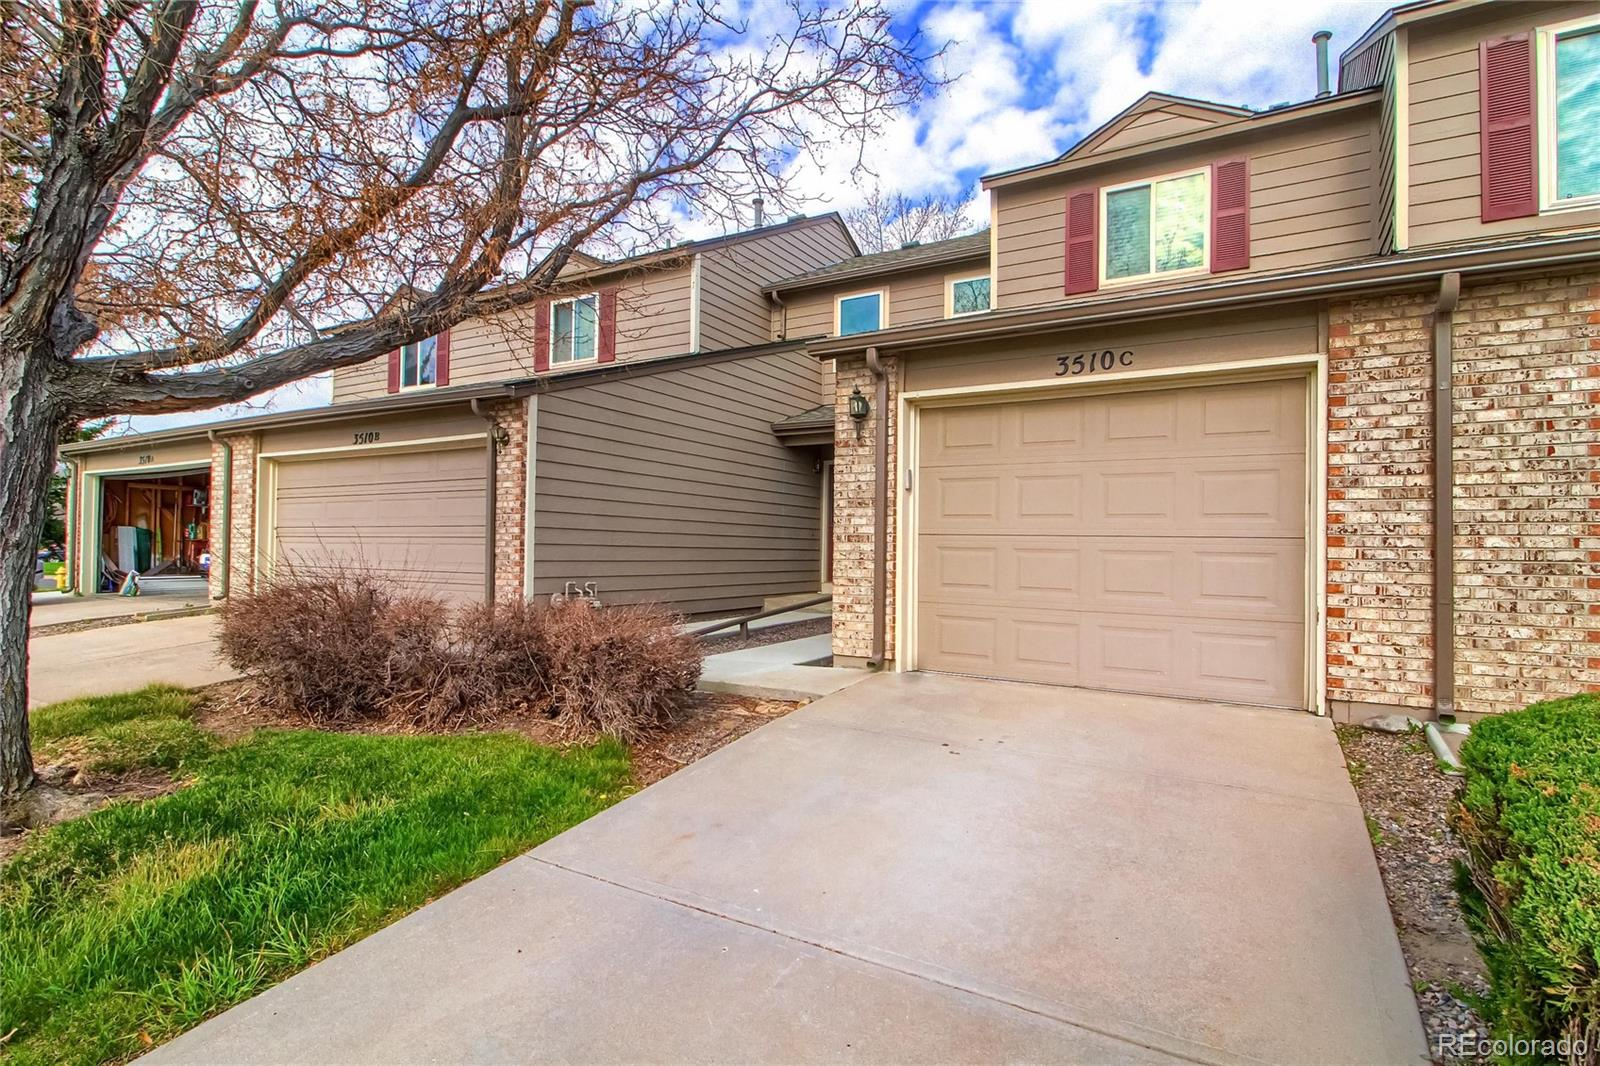 MLS# 3641043 - 34 - 3510 S Telluride Circle #C, Aurora, CO 80013